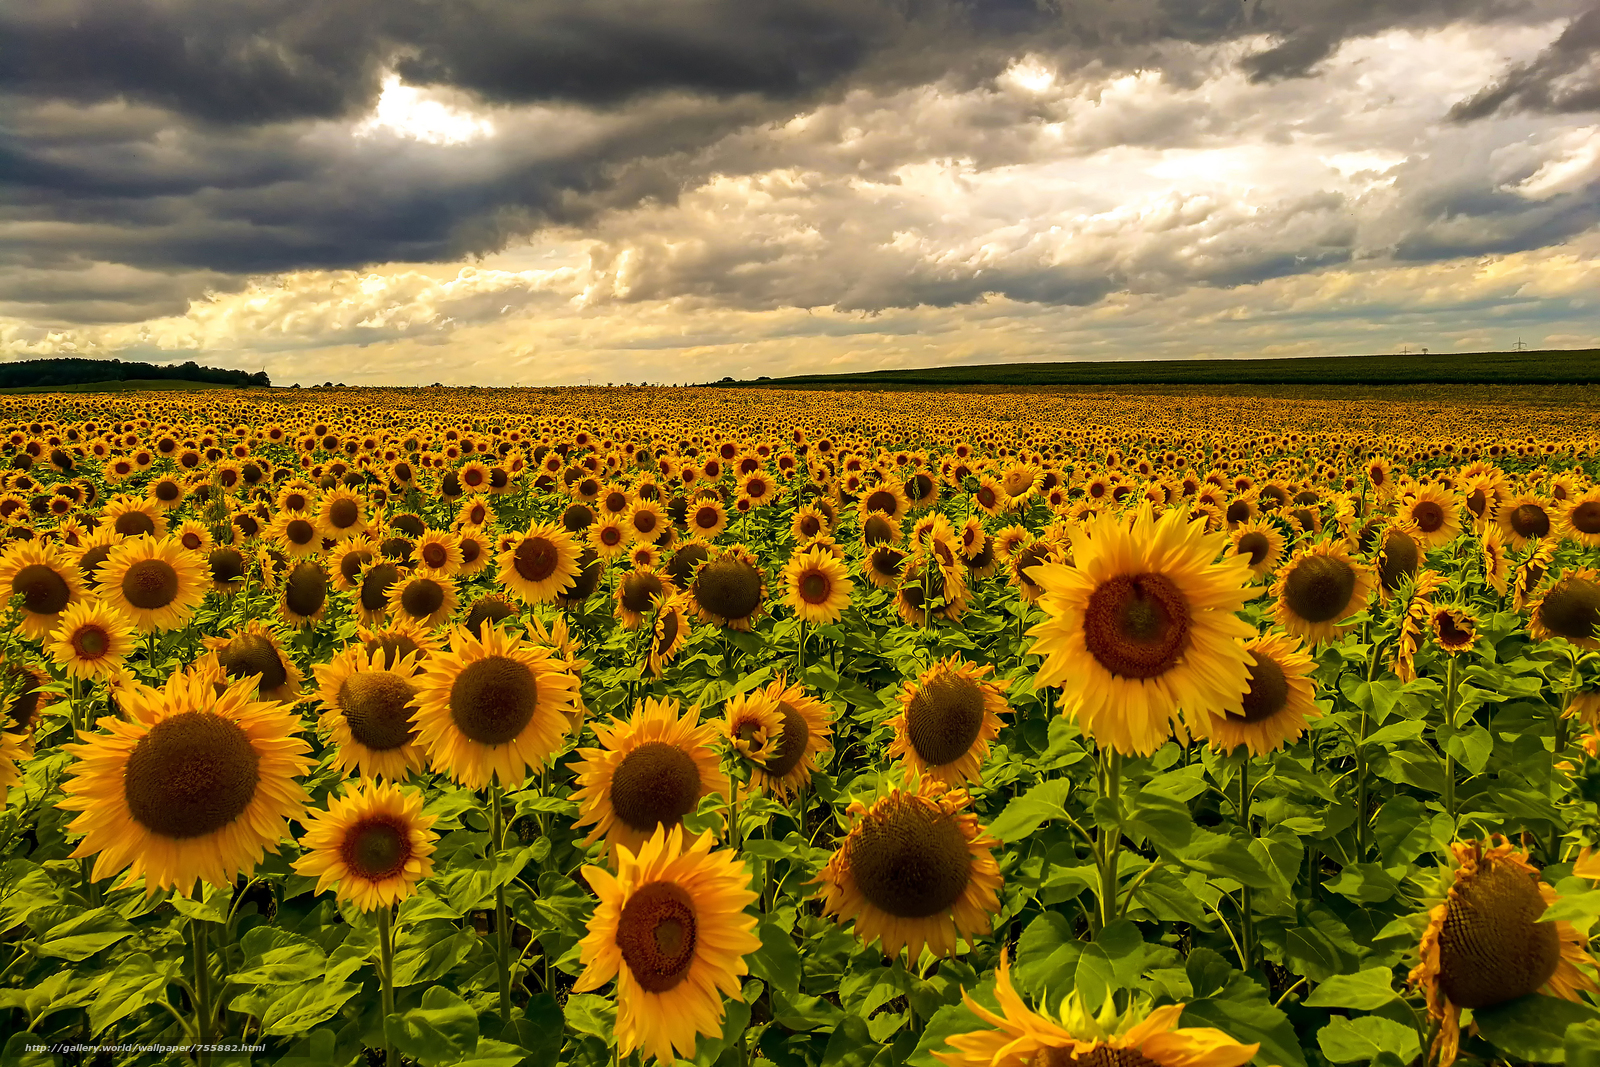 sunset, field, sunflowers, flowers, flora, landscape